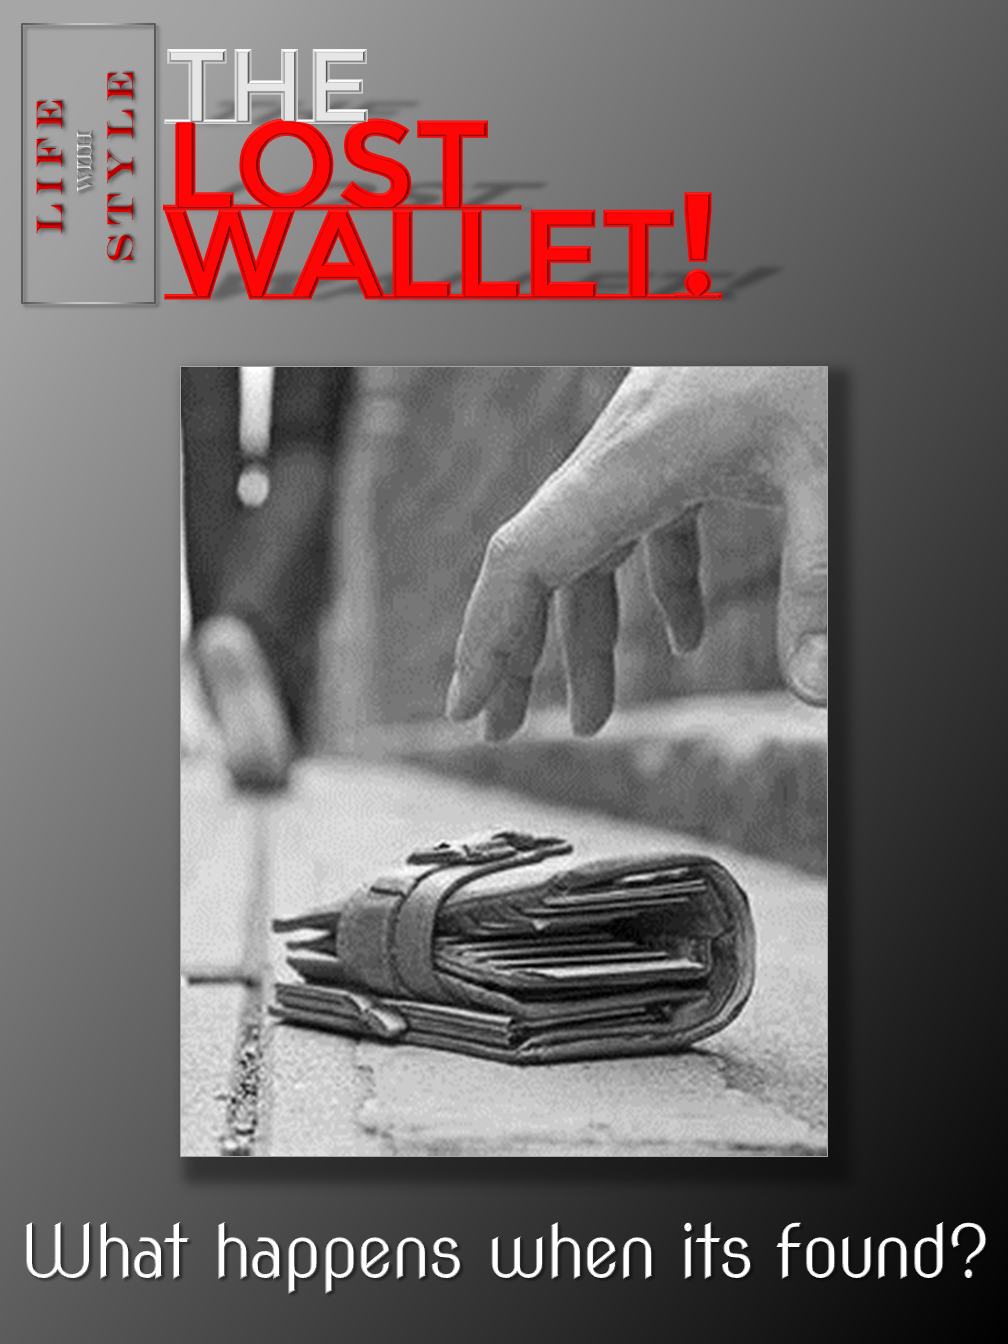 The Lost Wallet!